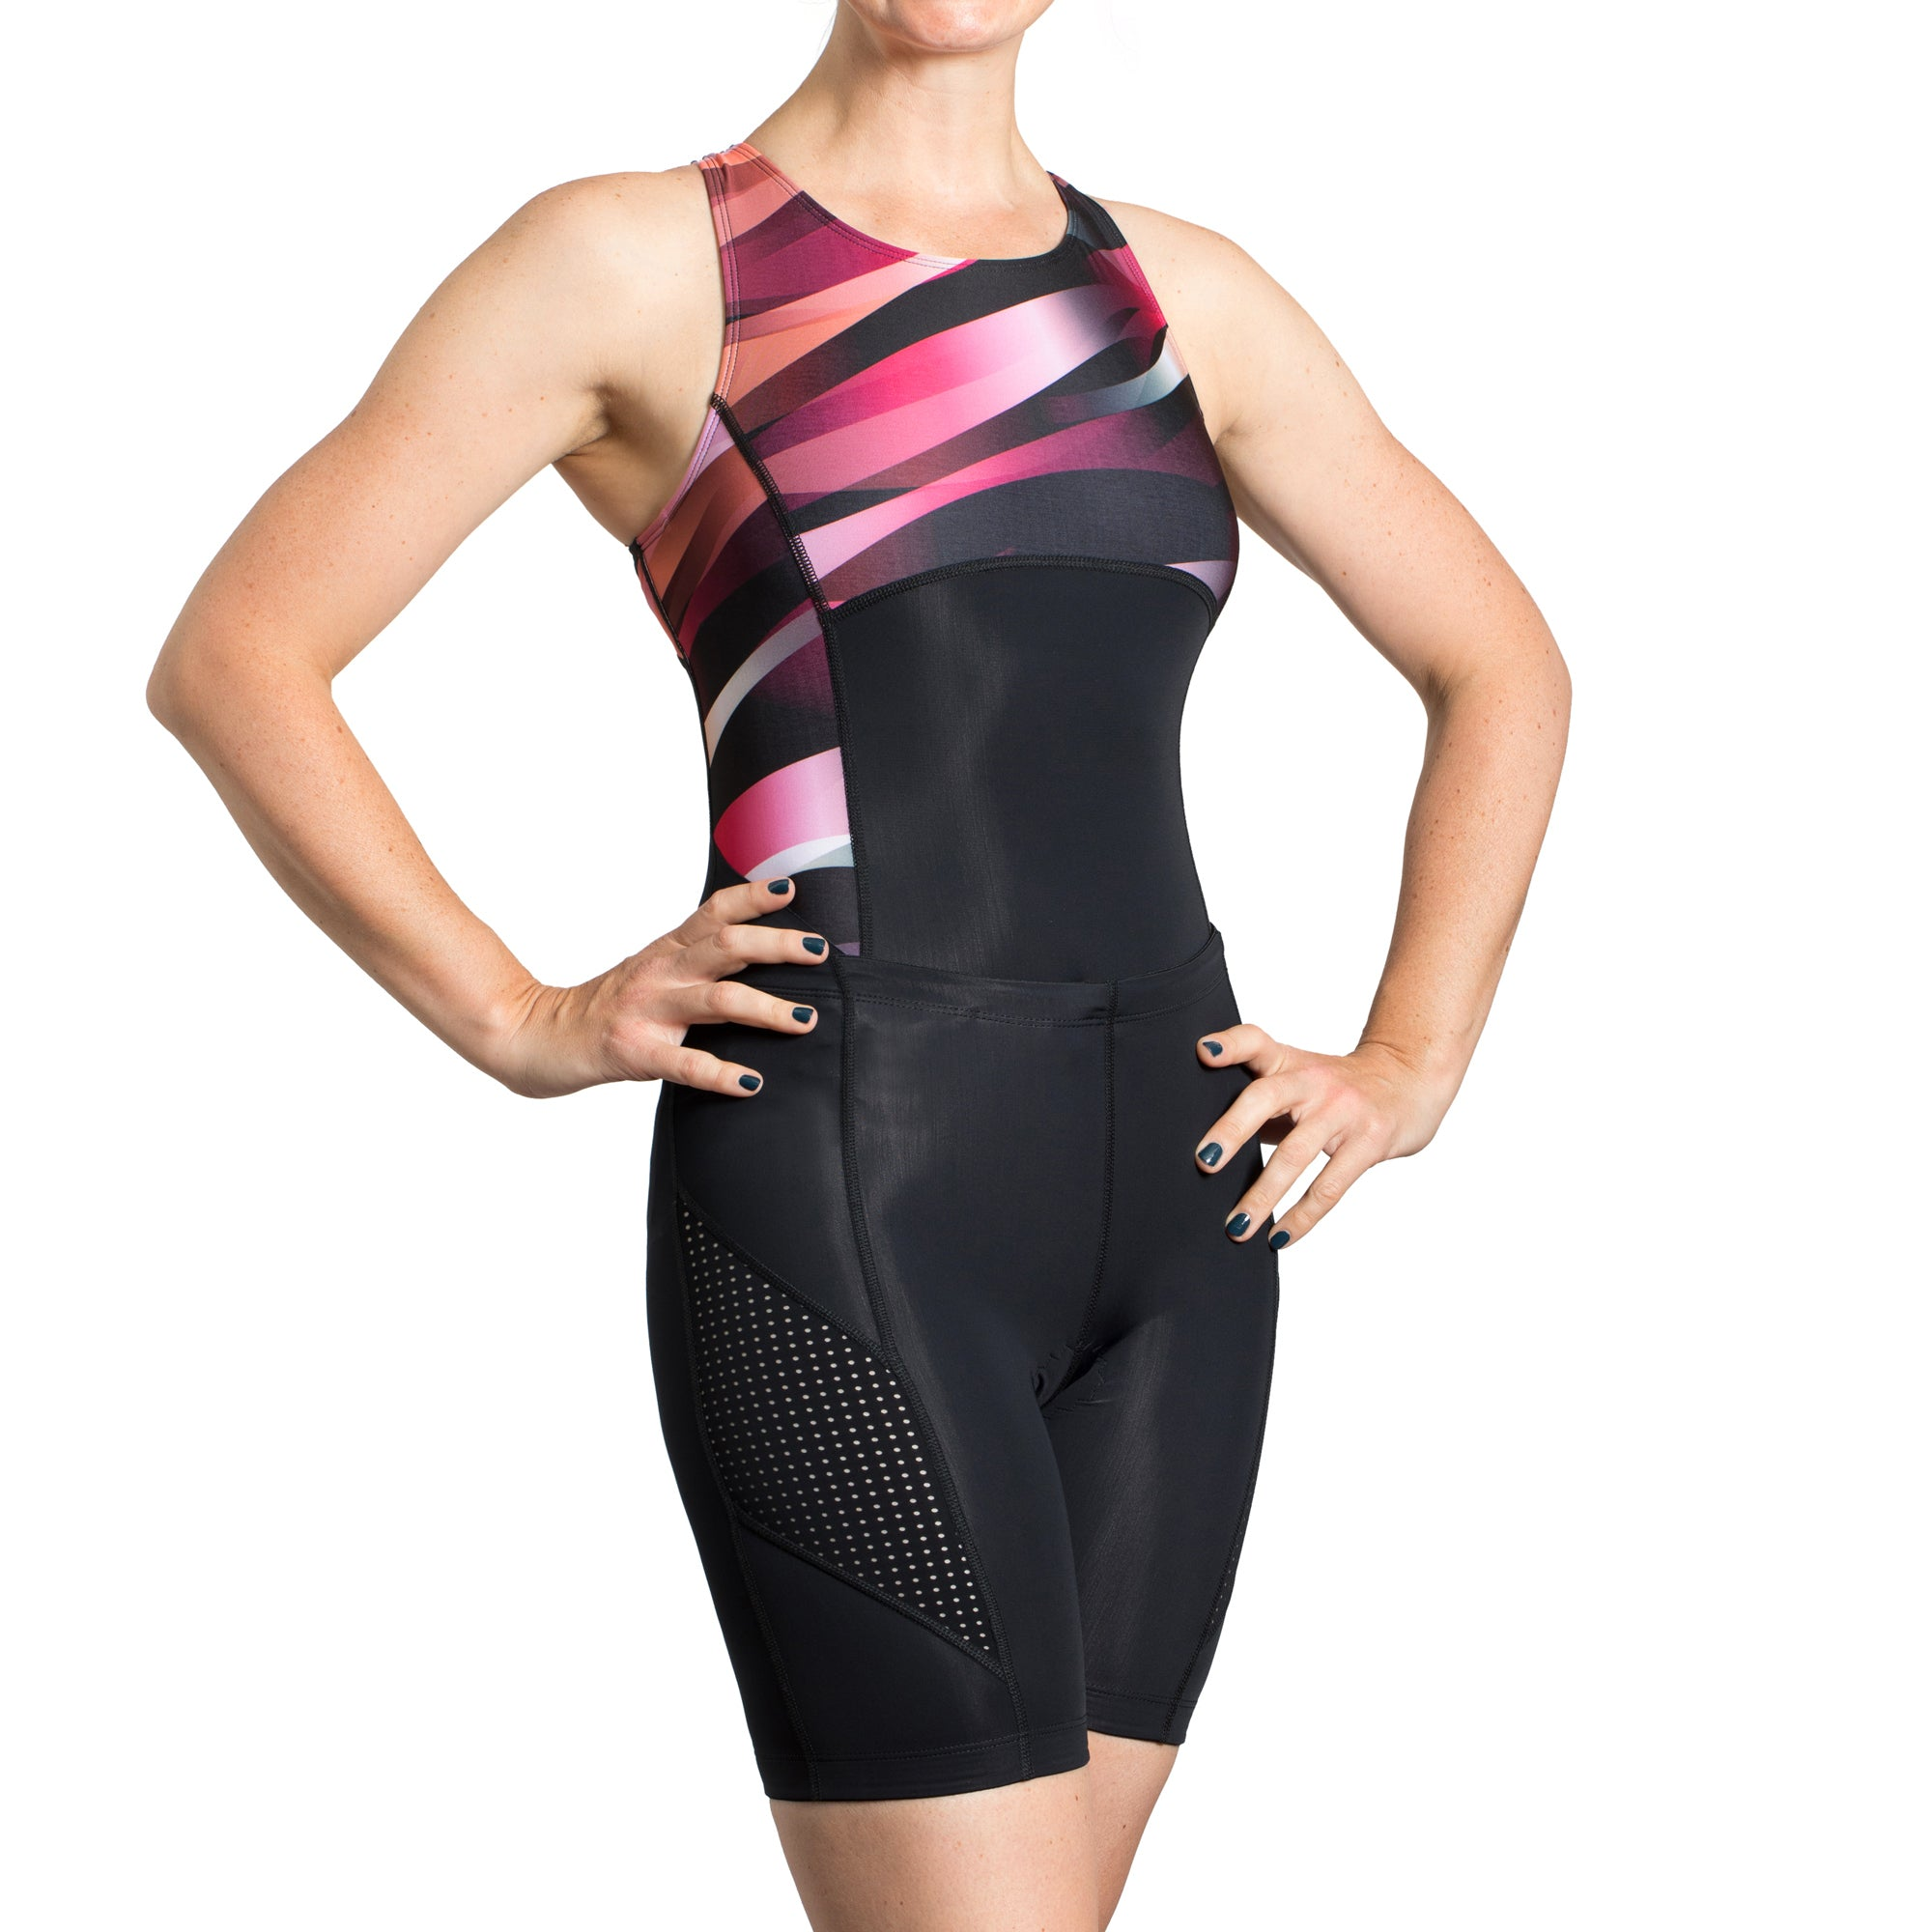 Triathlon swimsuit and triathlon shorts. Very versatile, now on sale!